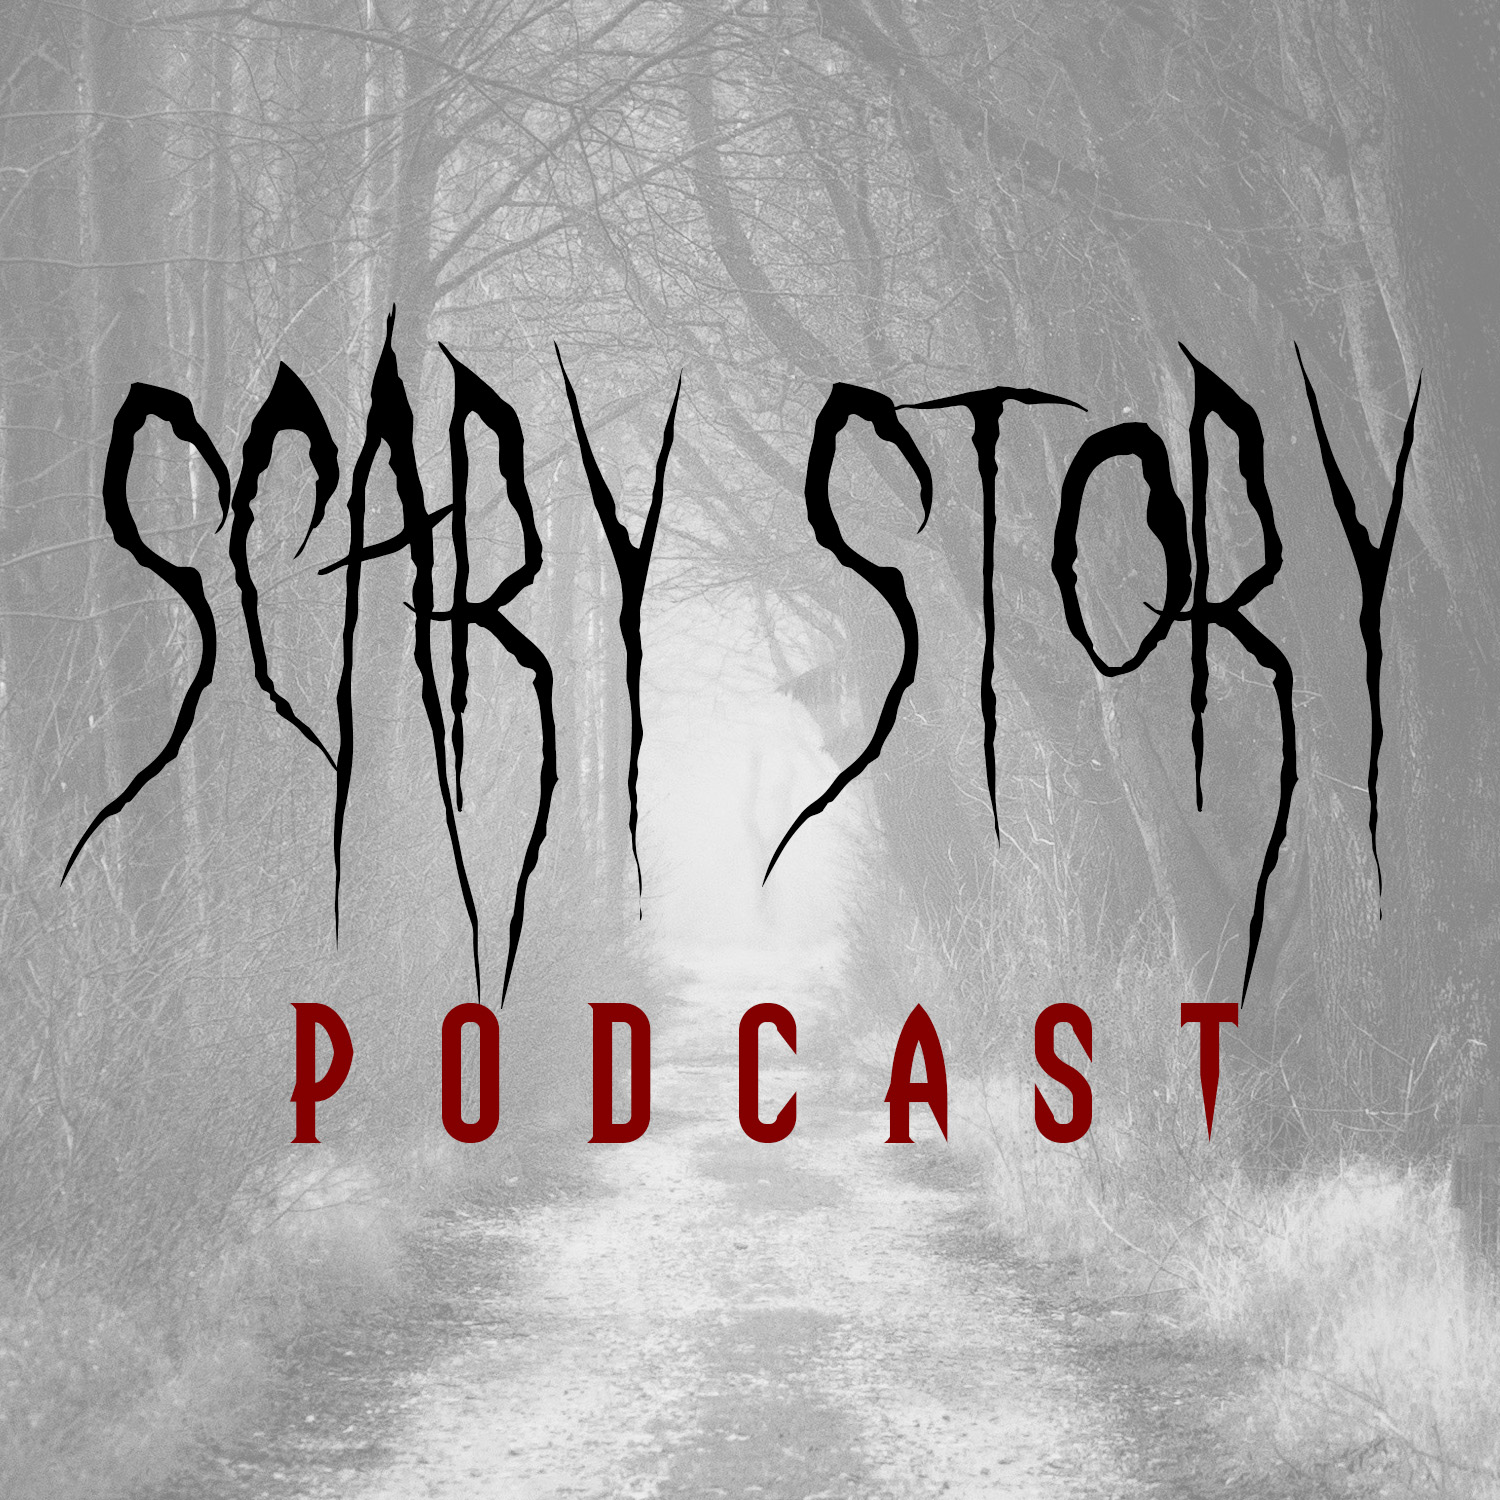 Scary Story Podcast show art